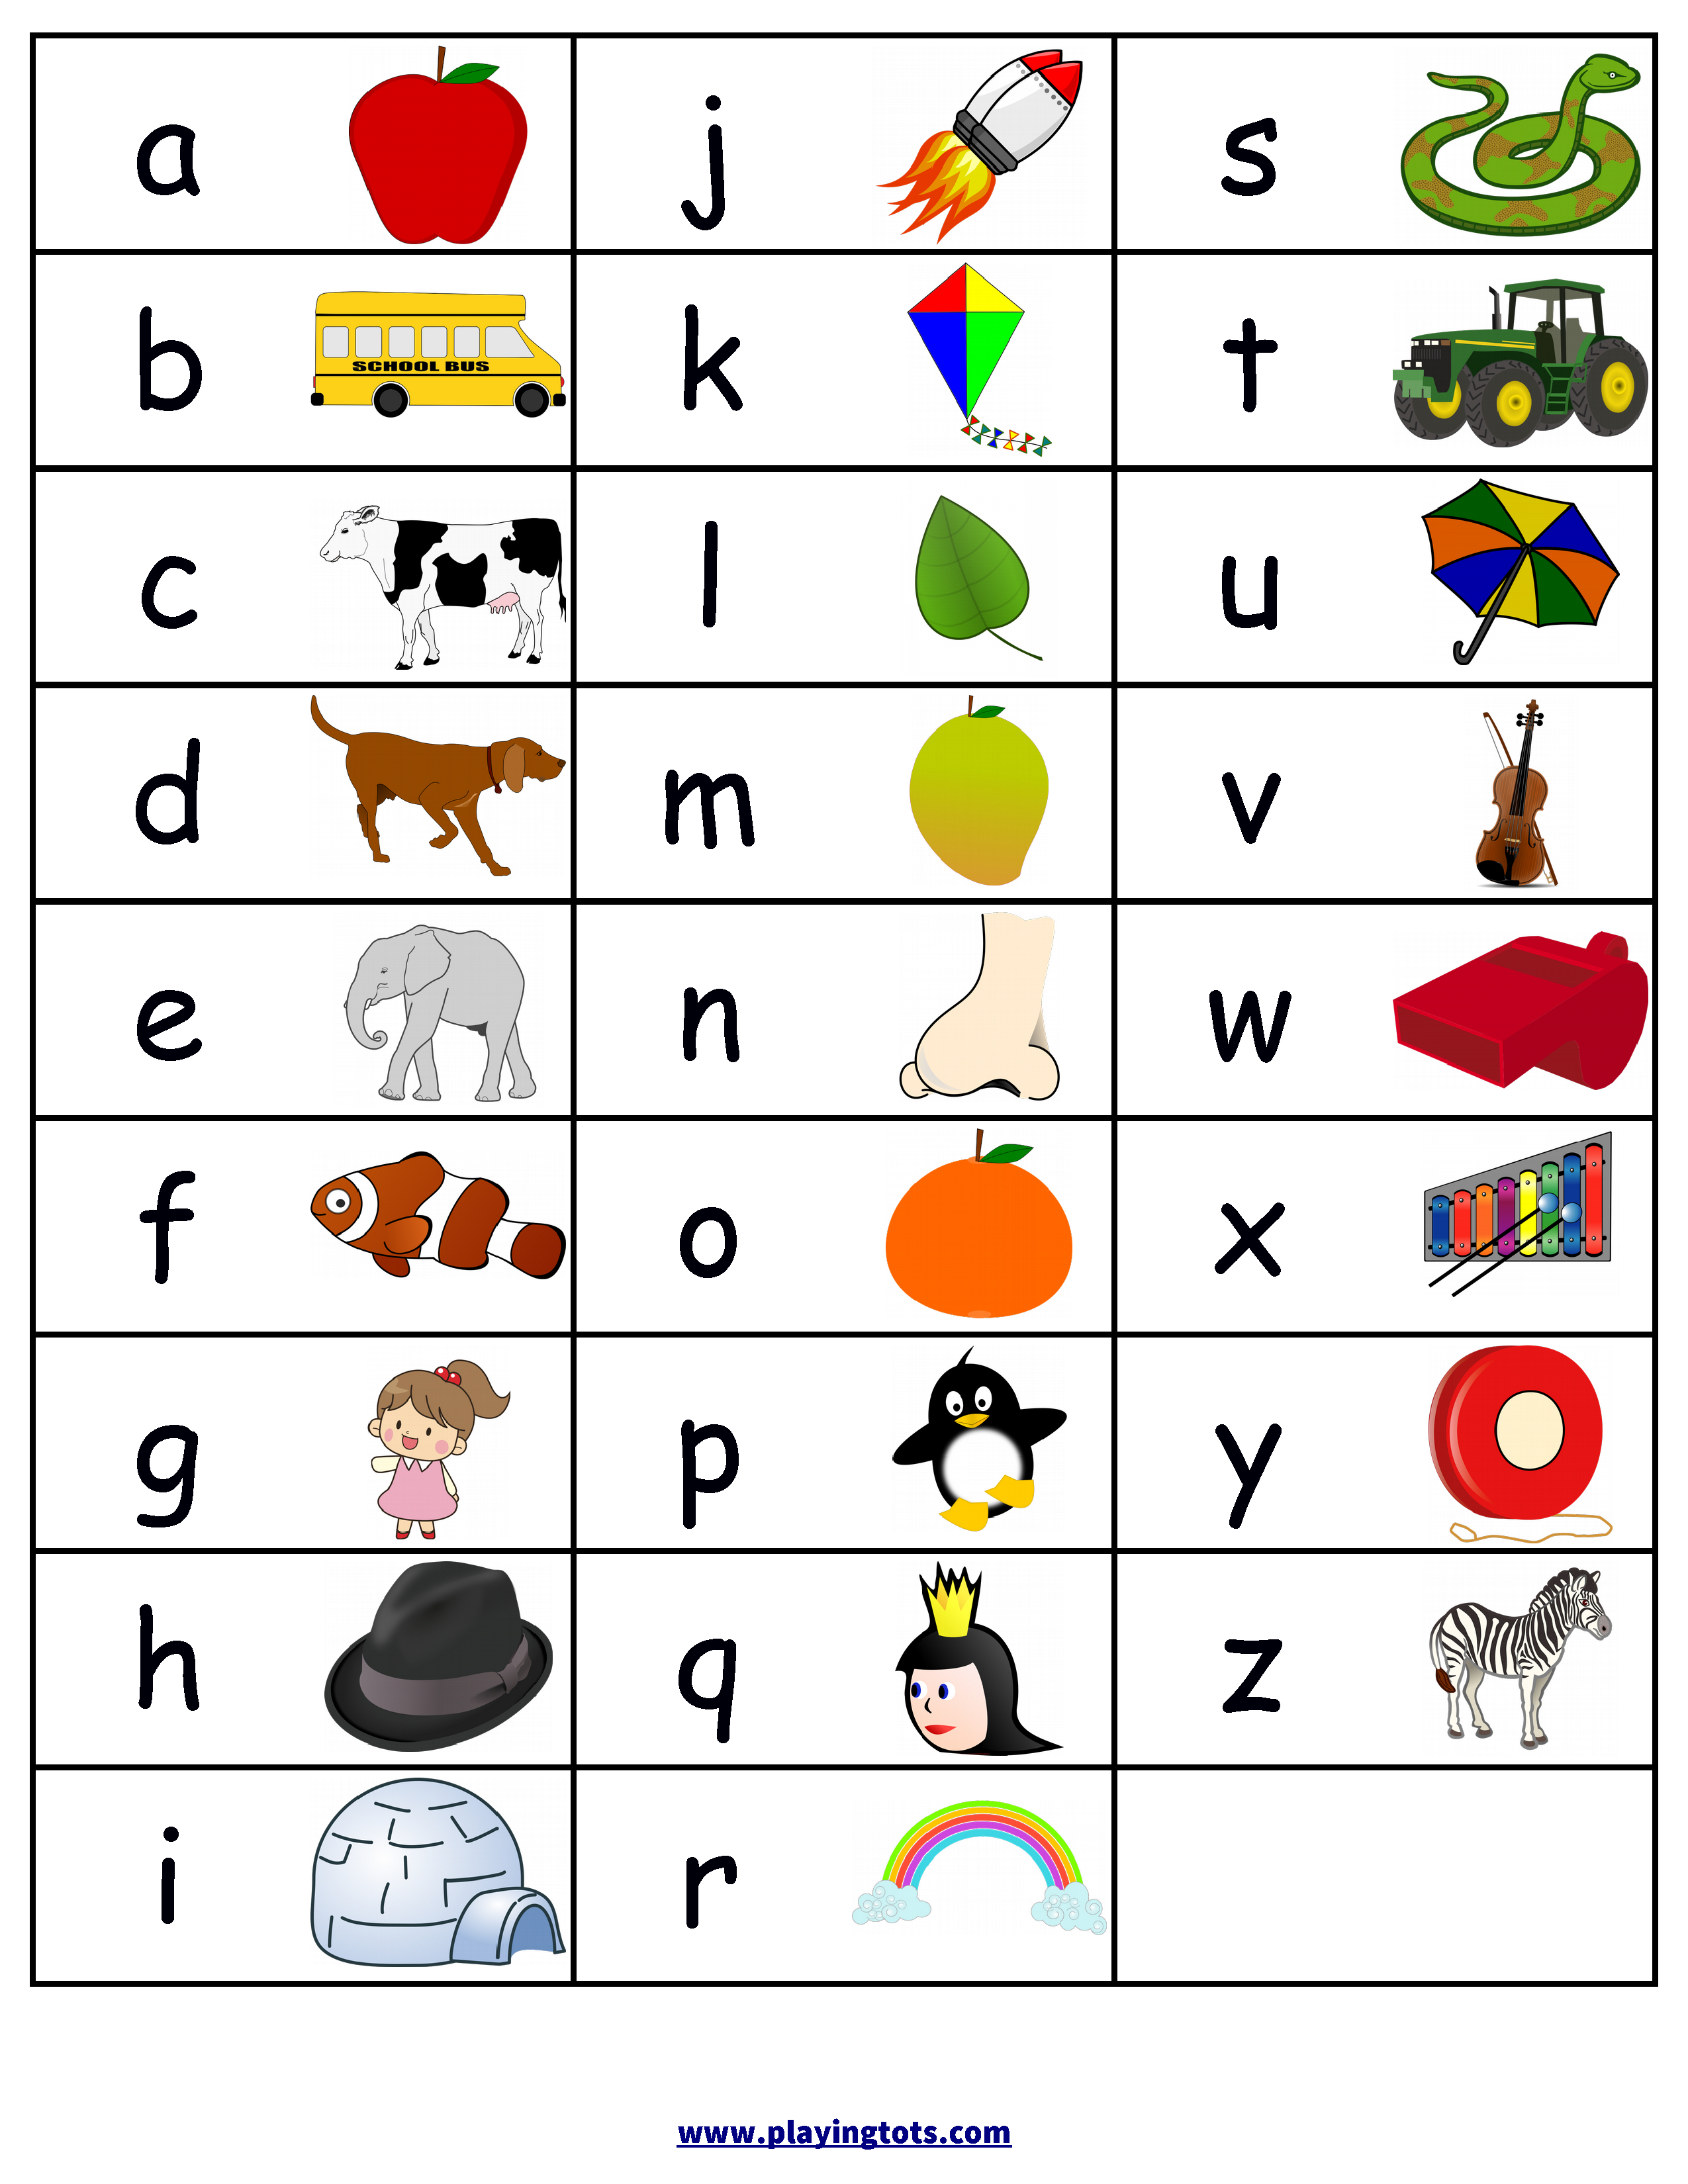 Free Printable Alphabets Chart With Pictures | Baby Bedroom - Free Printable Alphabet Chart